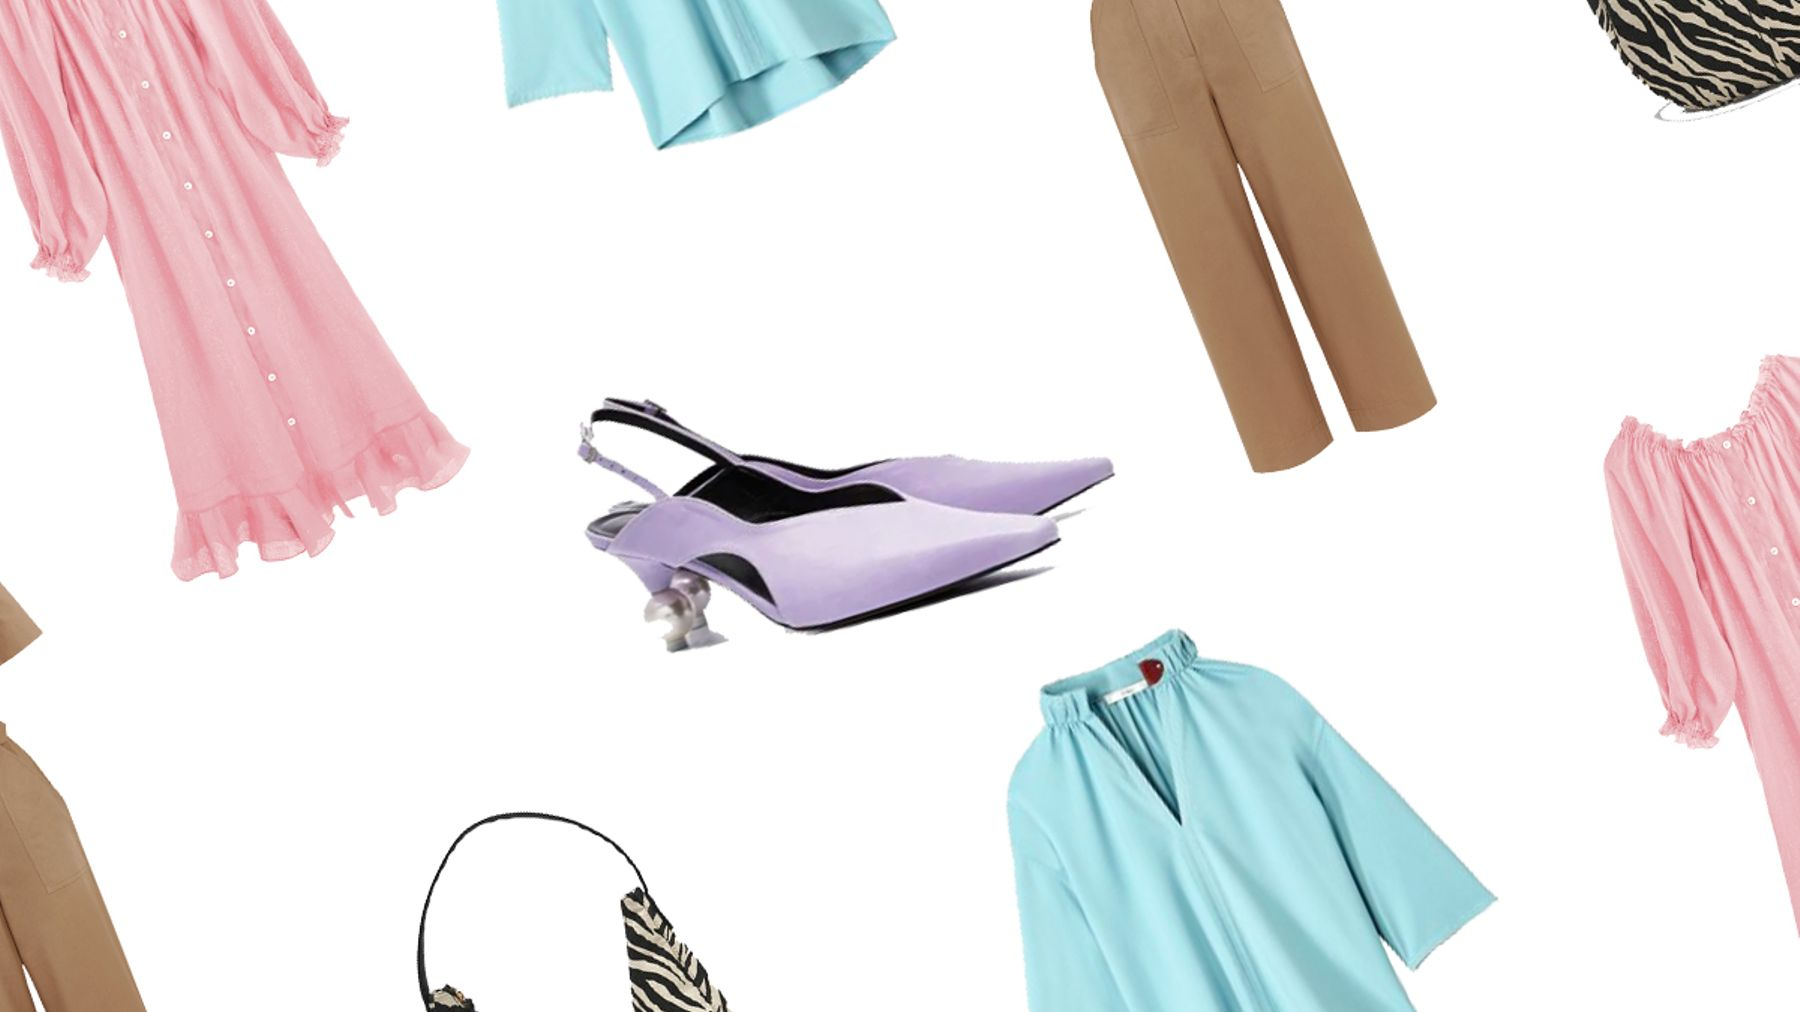 b36d74a406 Our Style Editor's Lust List: 17 Fashion Pieces To Add To Your ...